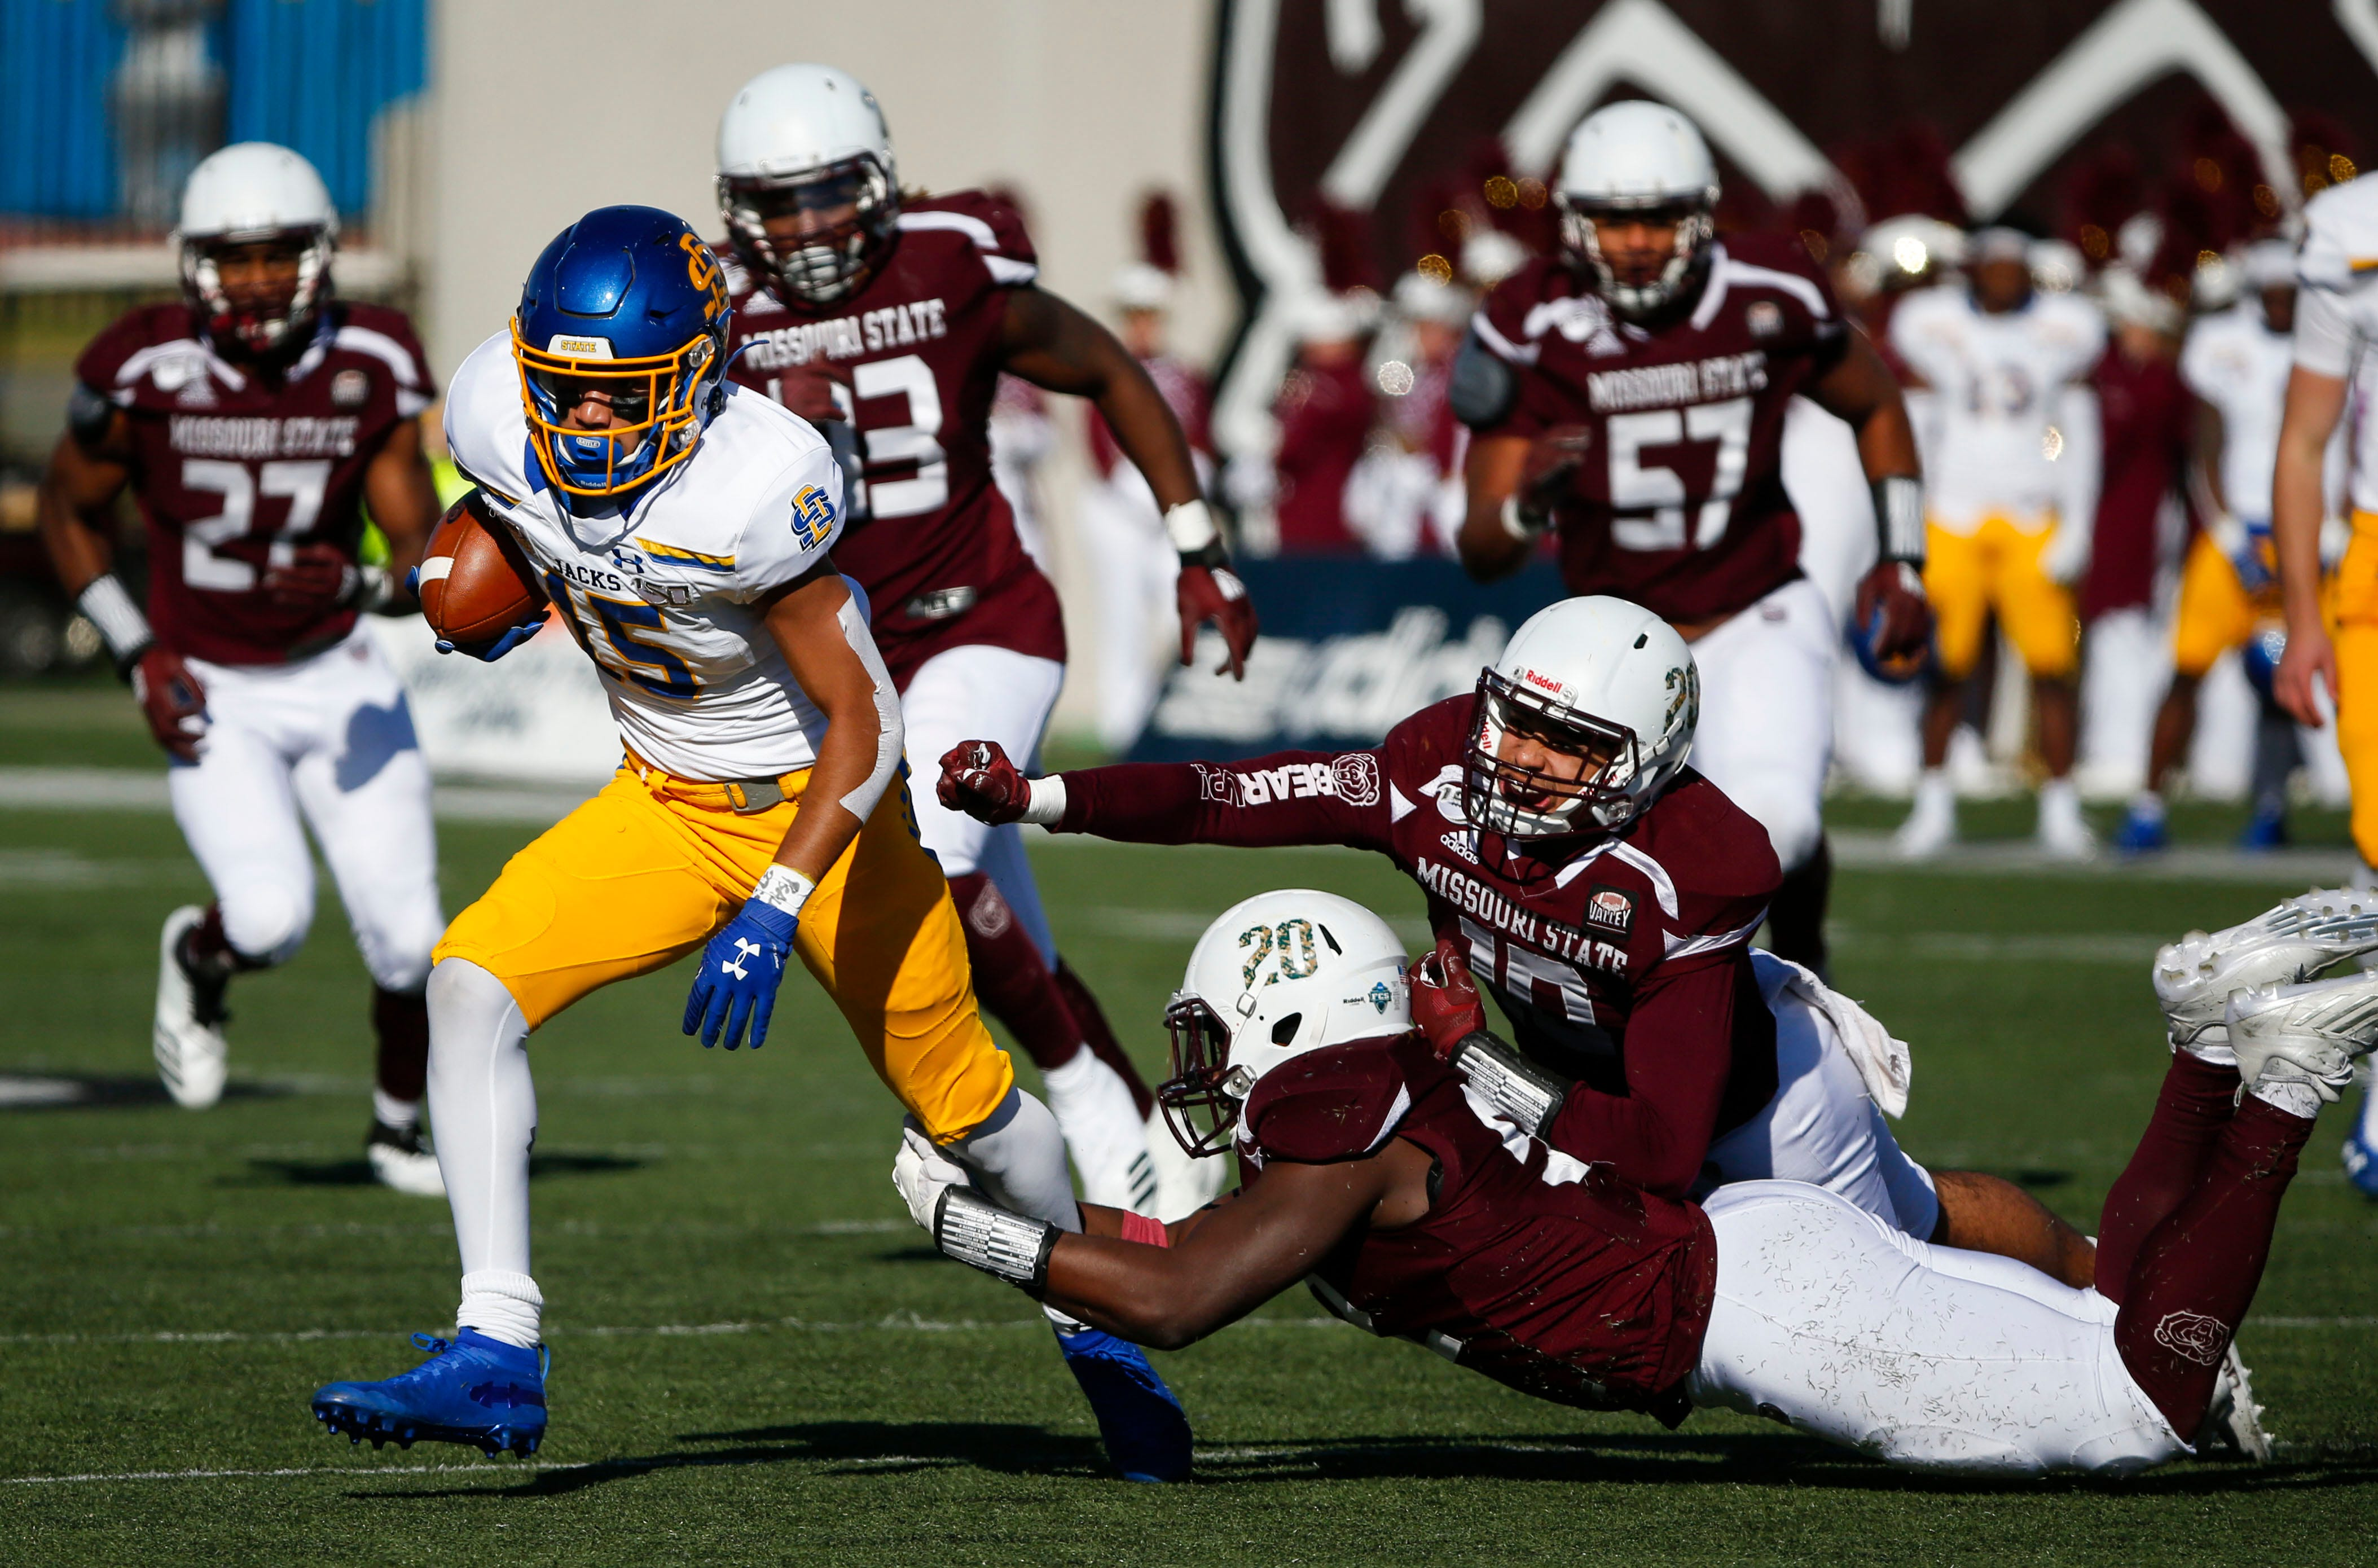 Sdsu Football Illinois State Comes To Brookings Fighting For Playoff Lives